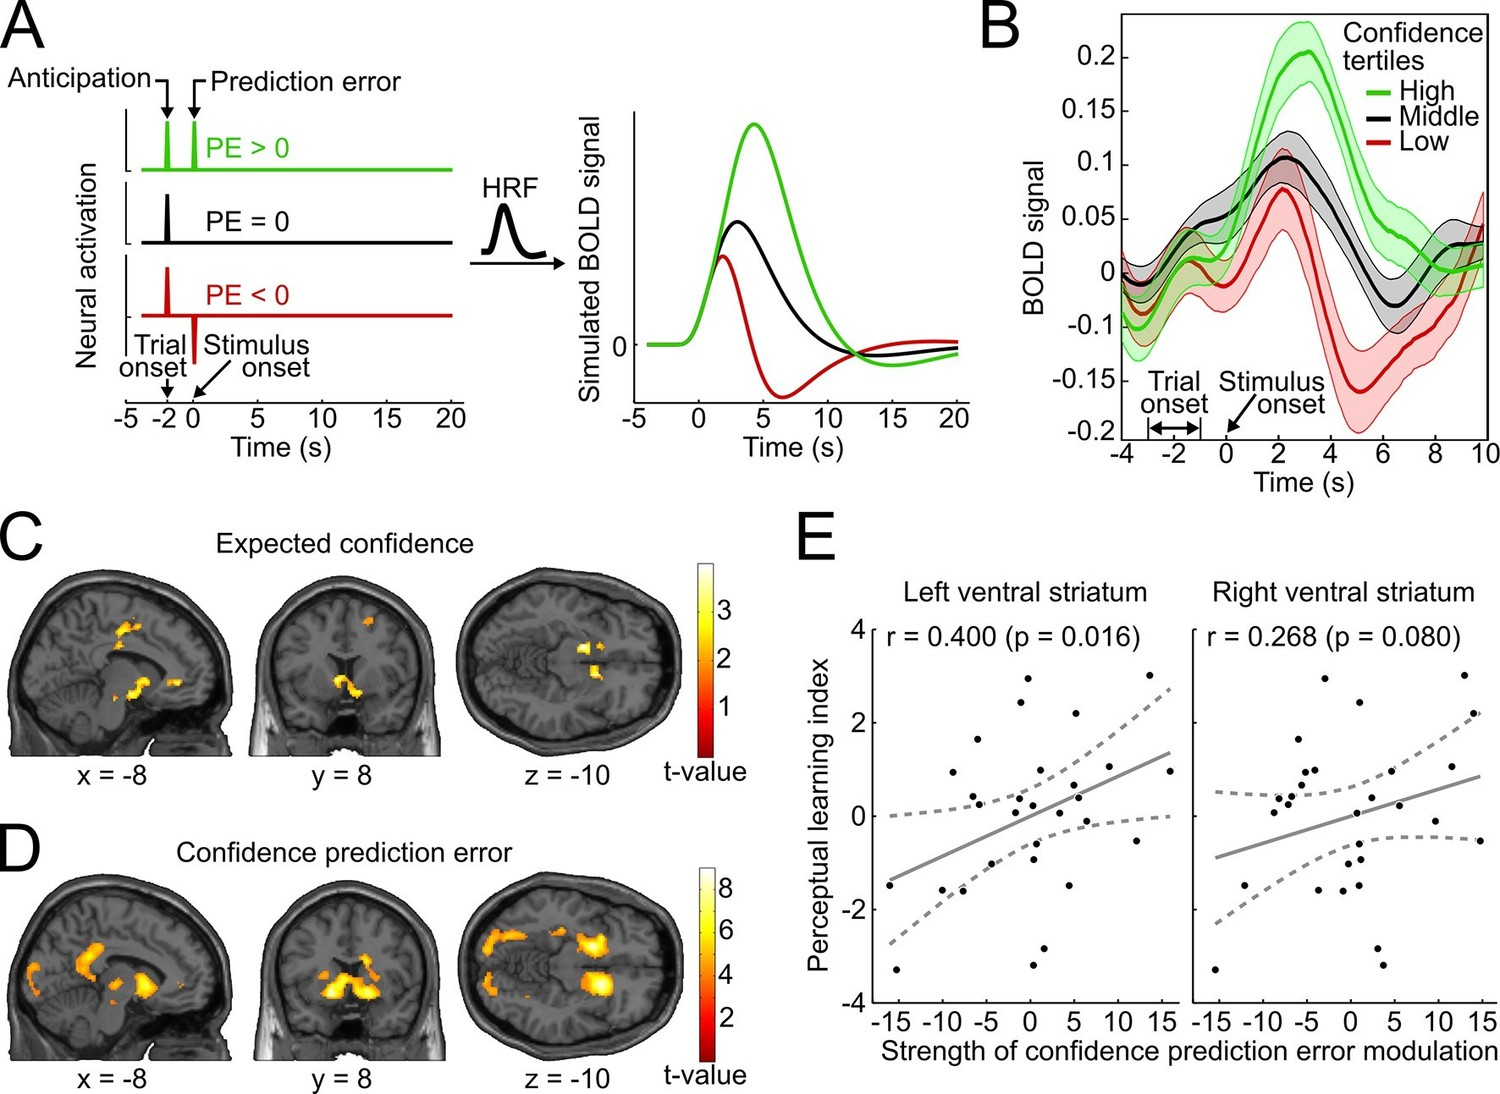 Mesolimbic Confidence Signals Guide Perceptual Learning In The Supplemental Instruction Learn How To Troubleshoot Plc Circuits System And Their Relation